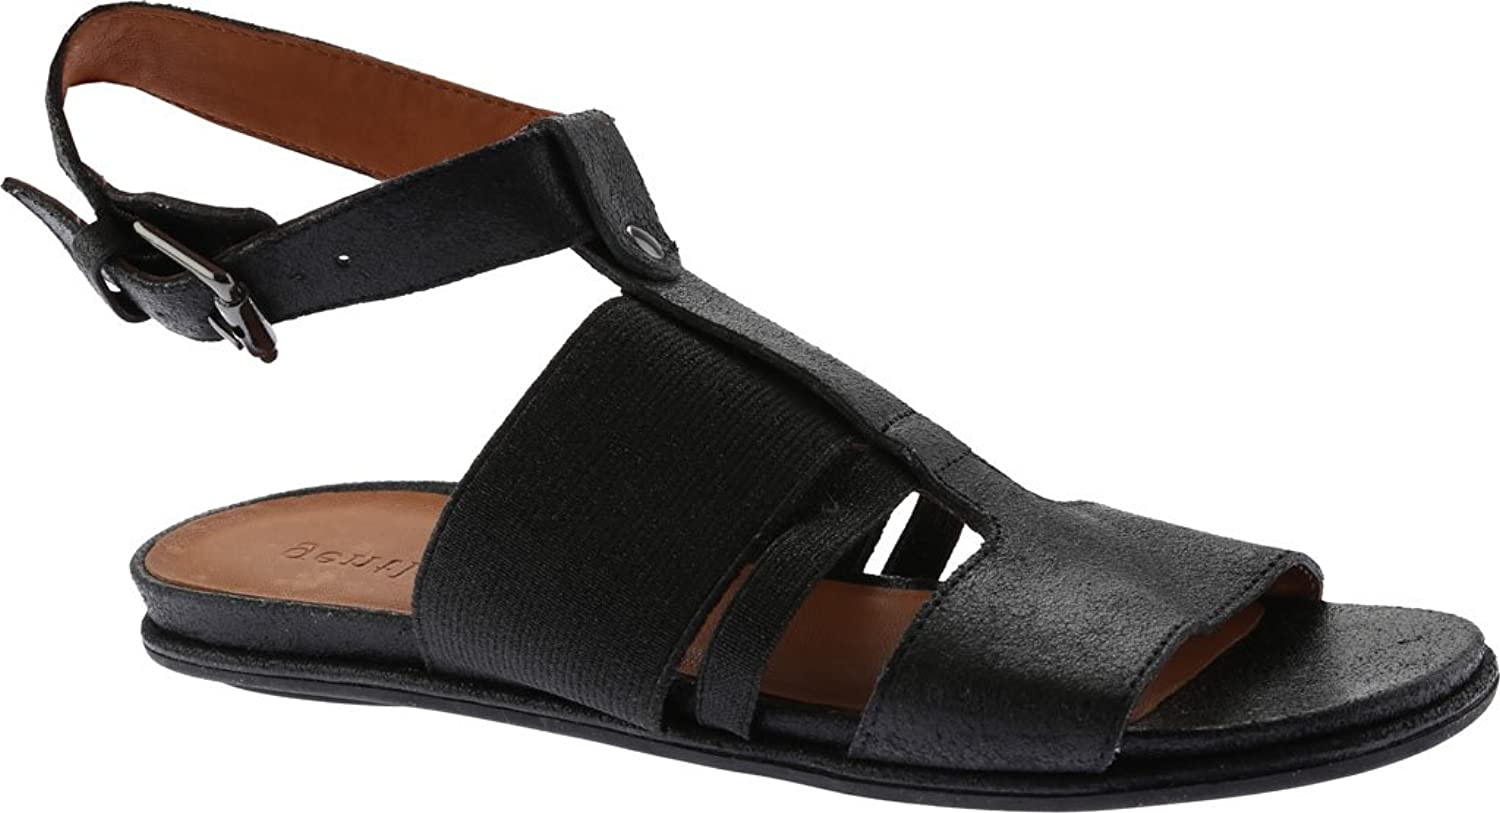 Gentle Souls by Kenneth Cole Womens Ophelia Metallic Ankle Evening Sandals